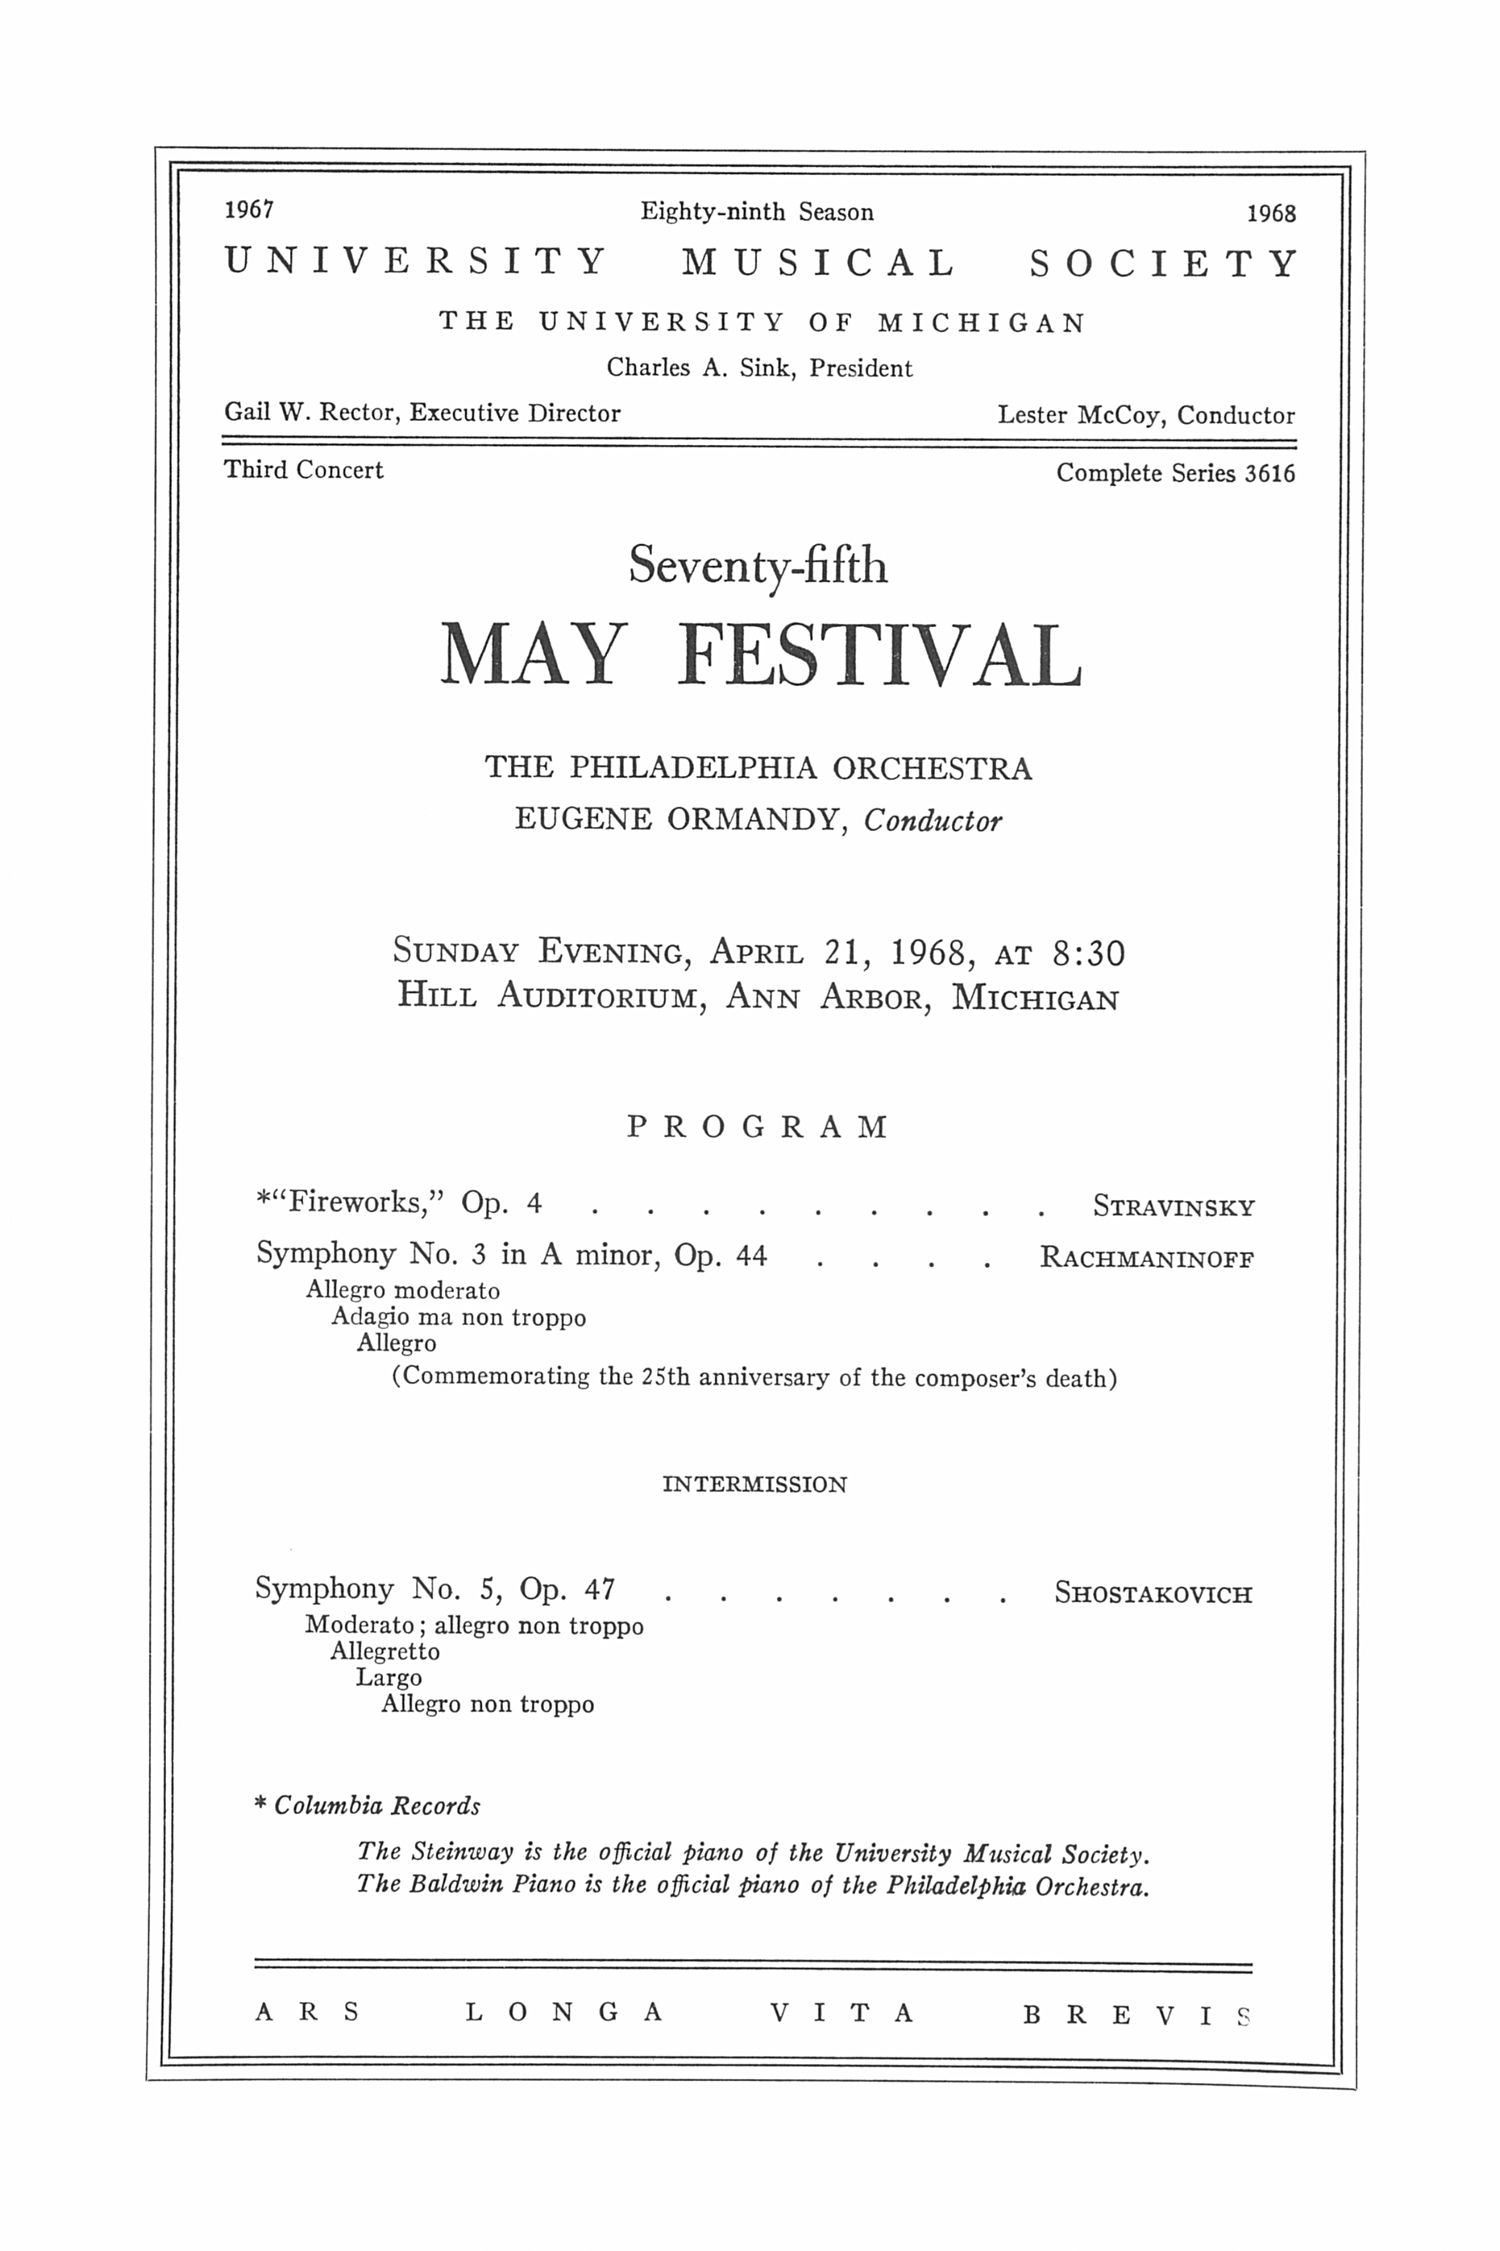 UMS Concert Program, April 21, 1968: Seventy-fifth May Festival -- The Philadelphia Orchestra image